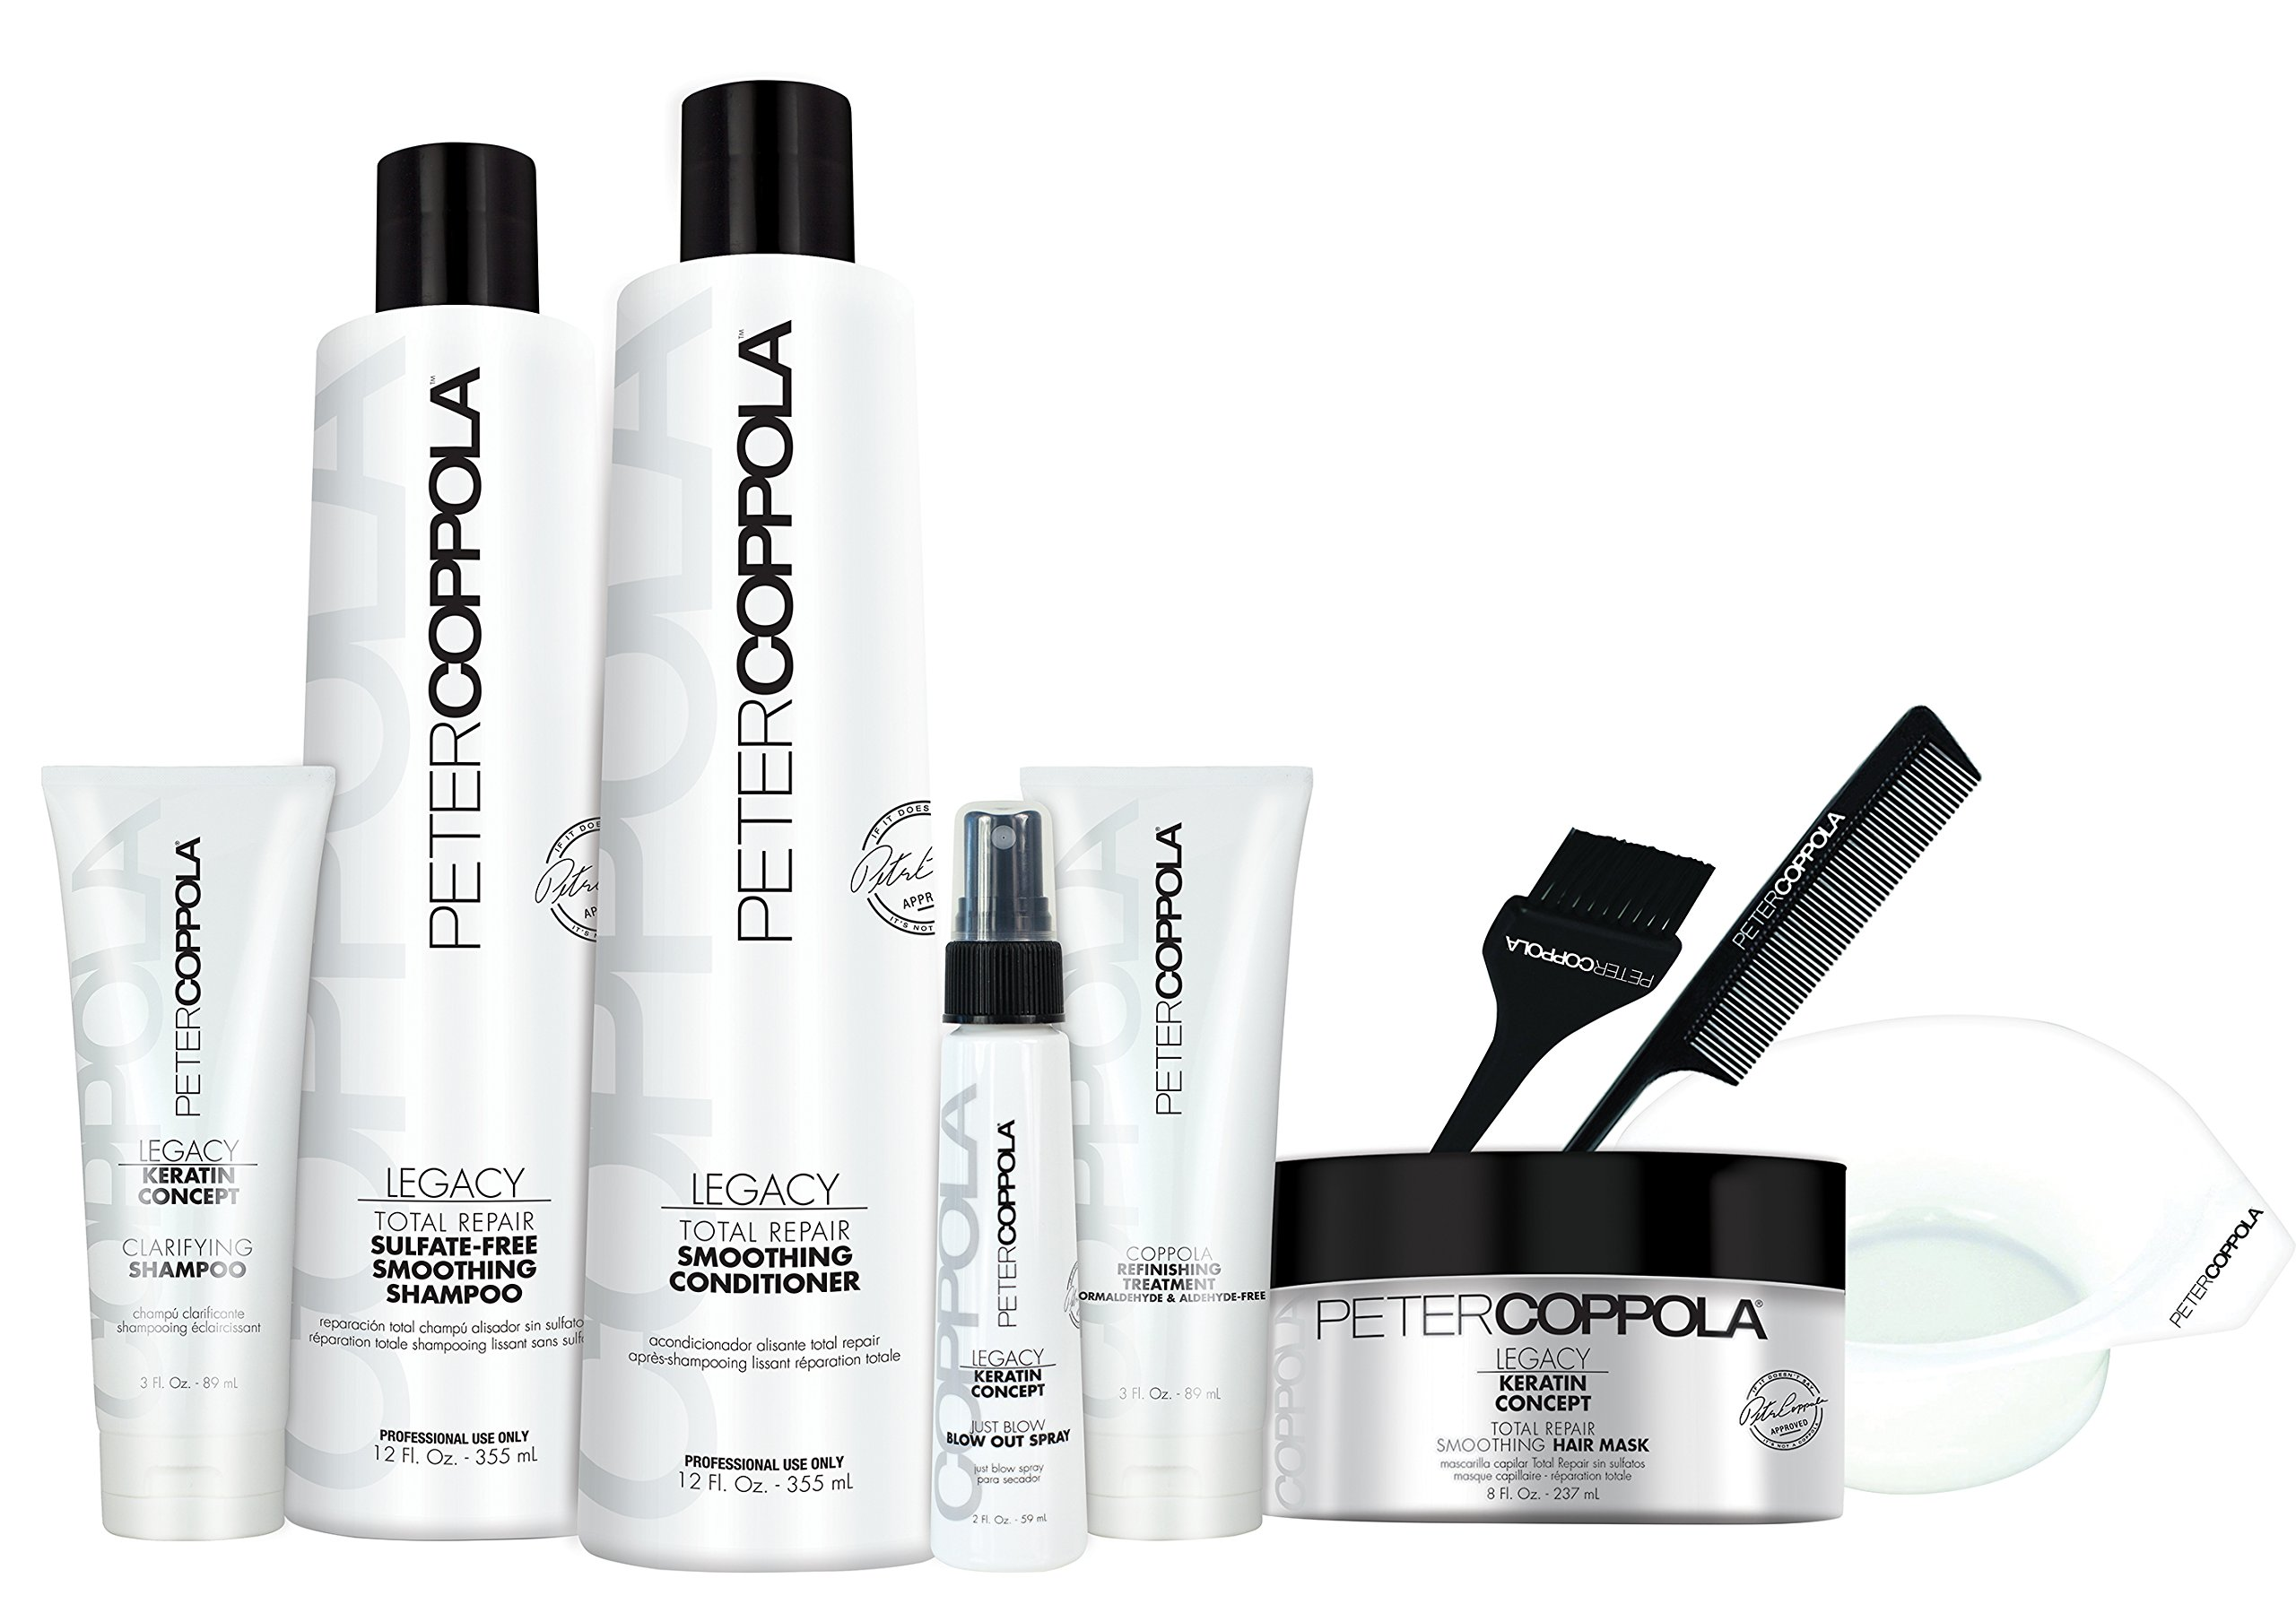 PETER COPPOLA Coppola Keratin Smoothing Treatment Formaldehyde & Aldehyde-Free (Treatment Kit with Aftercare) by Peter Coppola (Image #1)